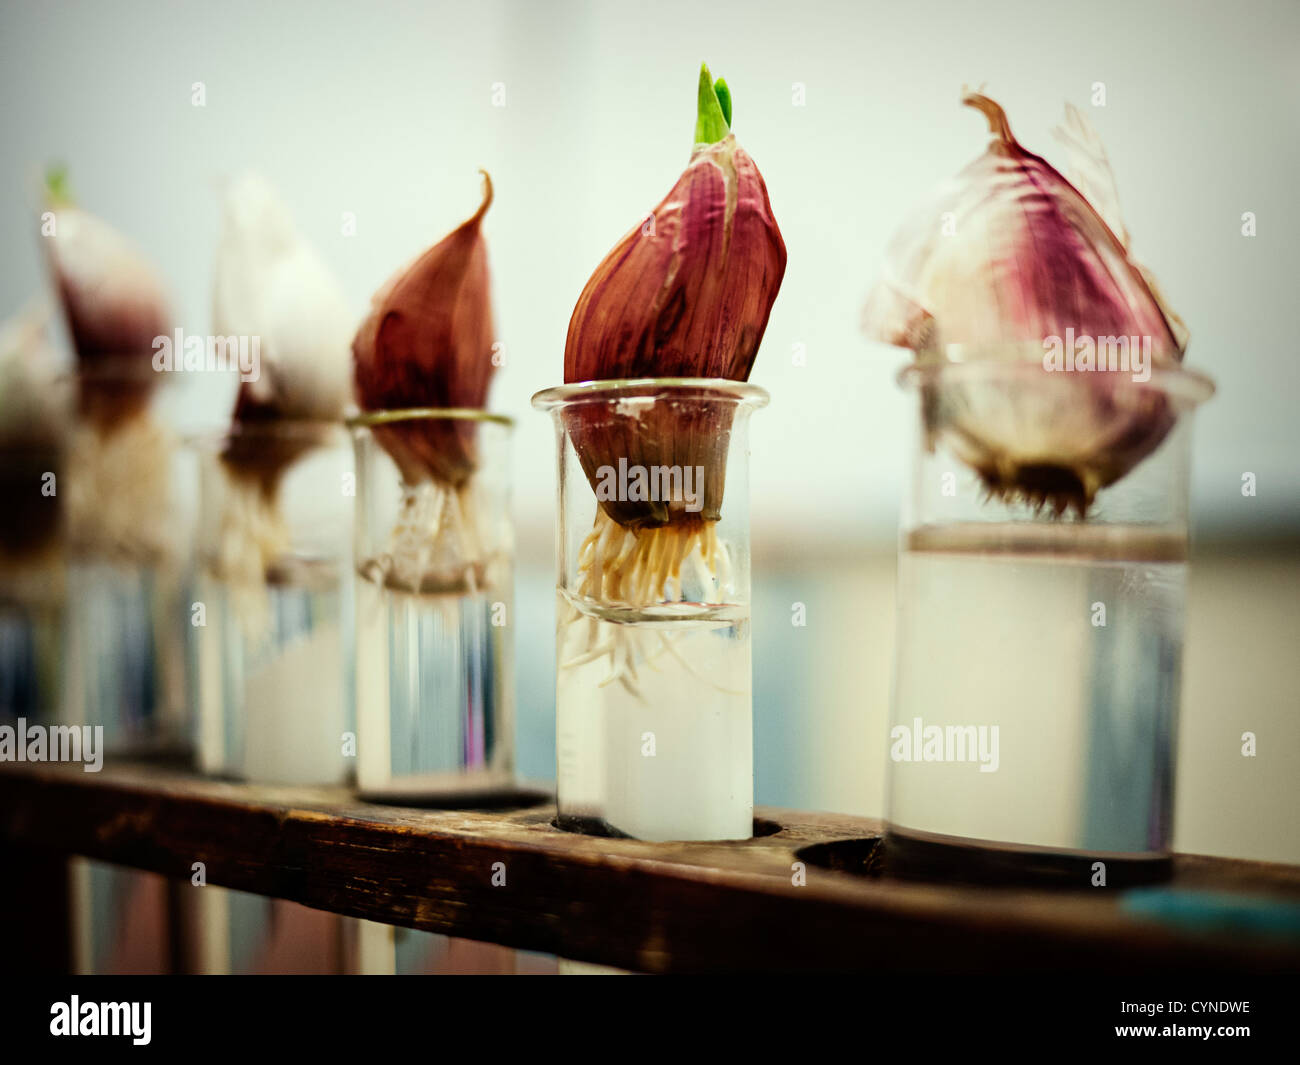 Garlic bulbs growing roots in test tubes - Stock Image